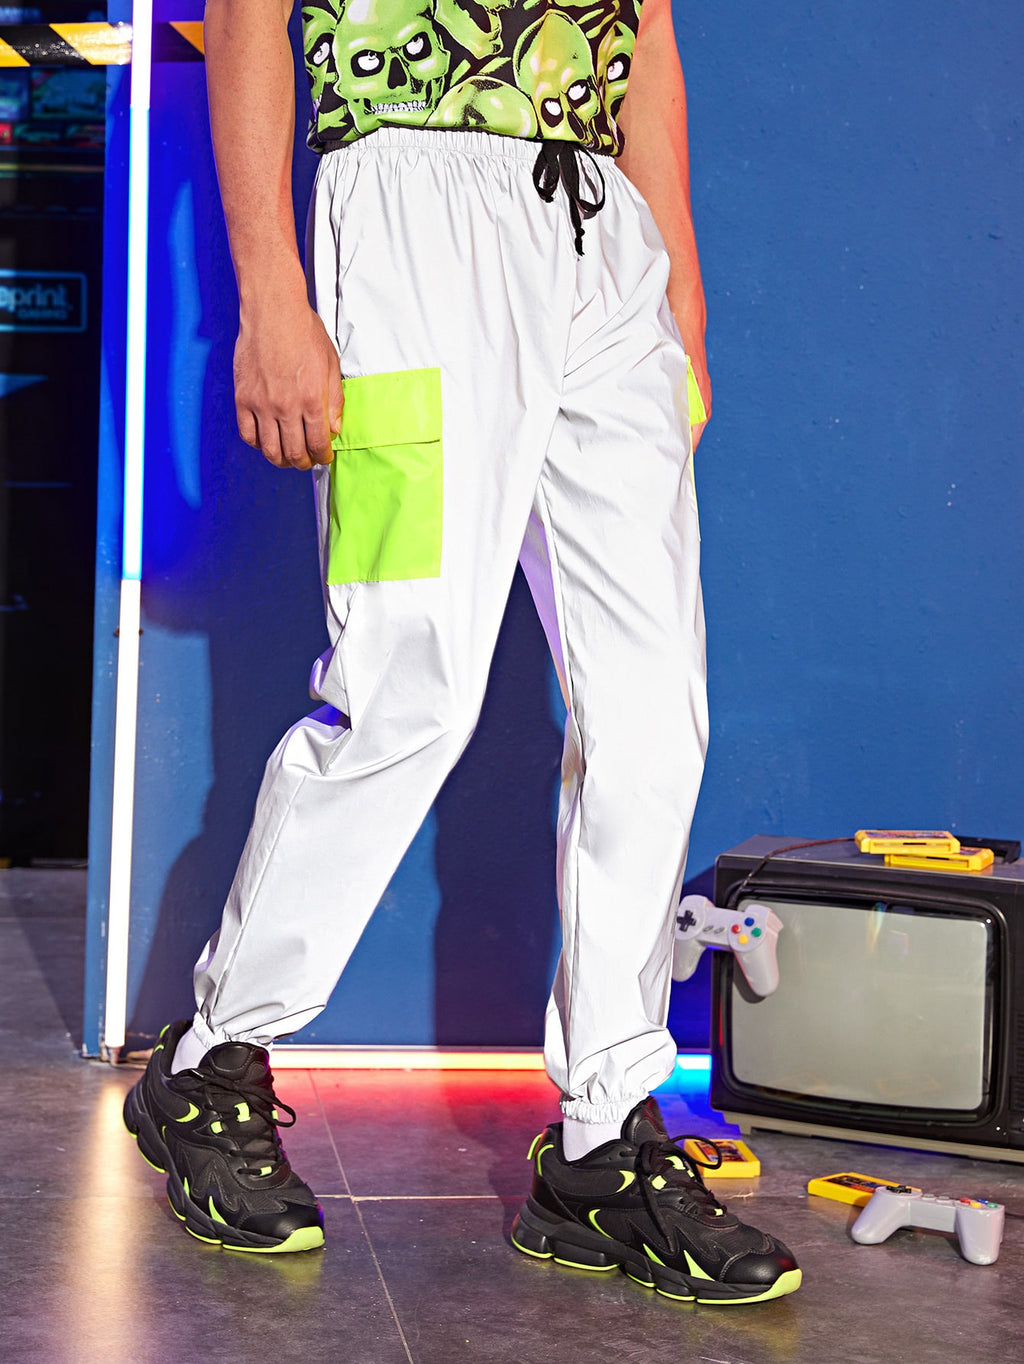 Neon Green Pocket Reflective Sweatpants - This Is For Him